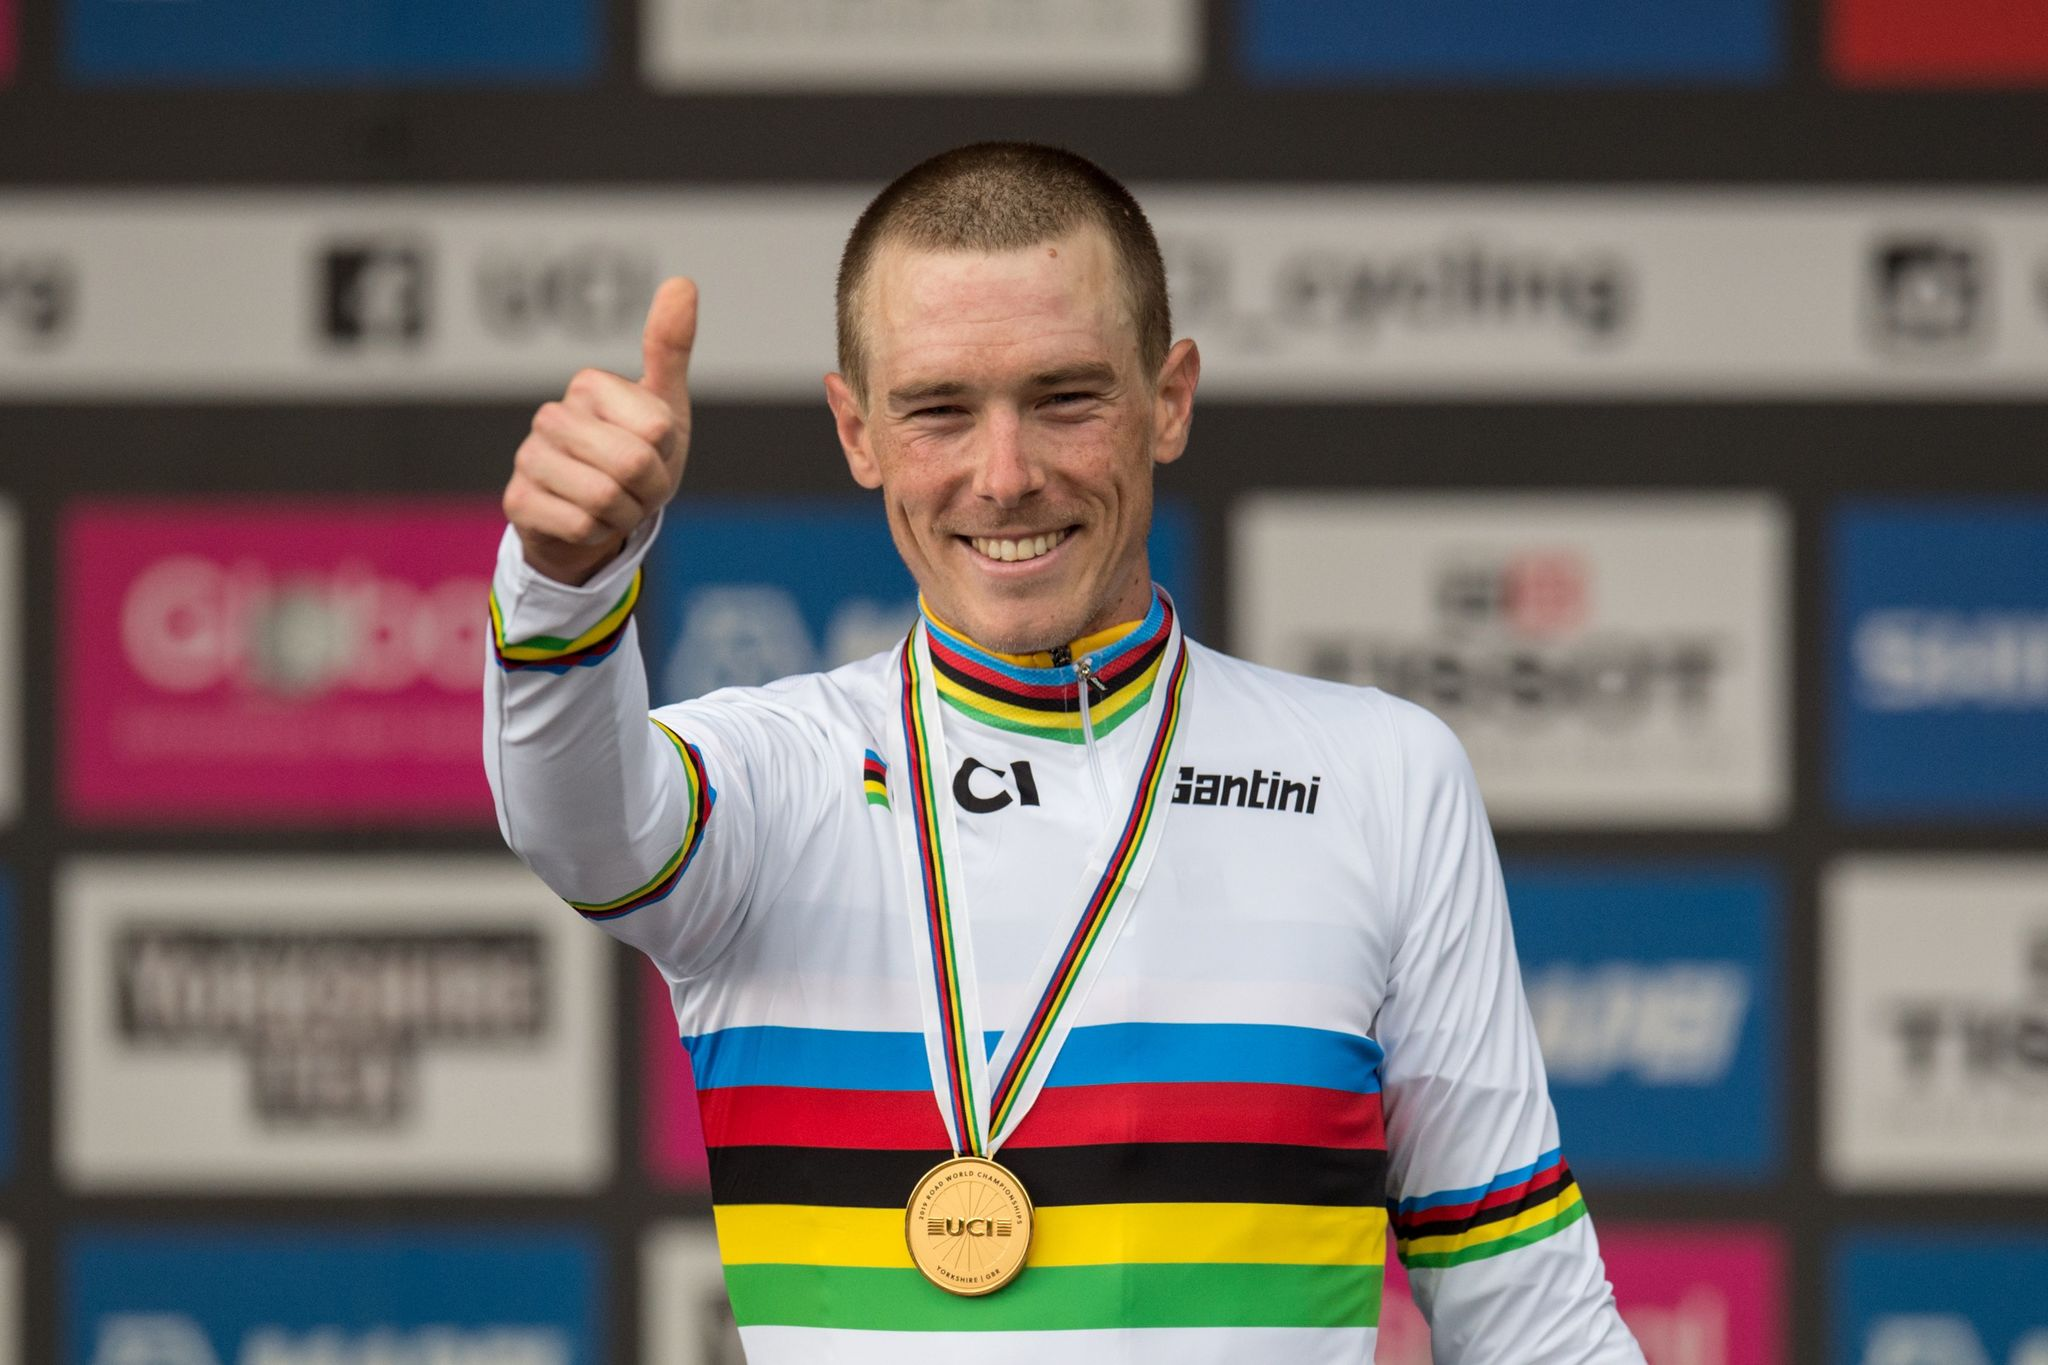 Australias <HIT>Rohan</HIT><HIT>Dennis</HIT> celebrates on the podium after winning the Elite Men Individual Time Trial, over 54 kms from Northallerton to Harrogate, at the 2019 UCI Road World Championships in Harrogate, northern England on September 25, 2019. (Photo by OLI SCARFF / AFP)